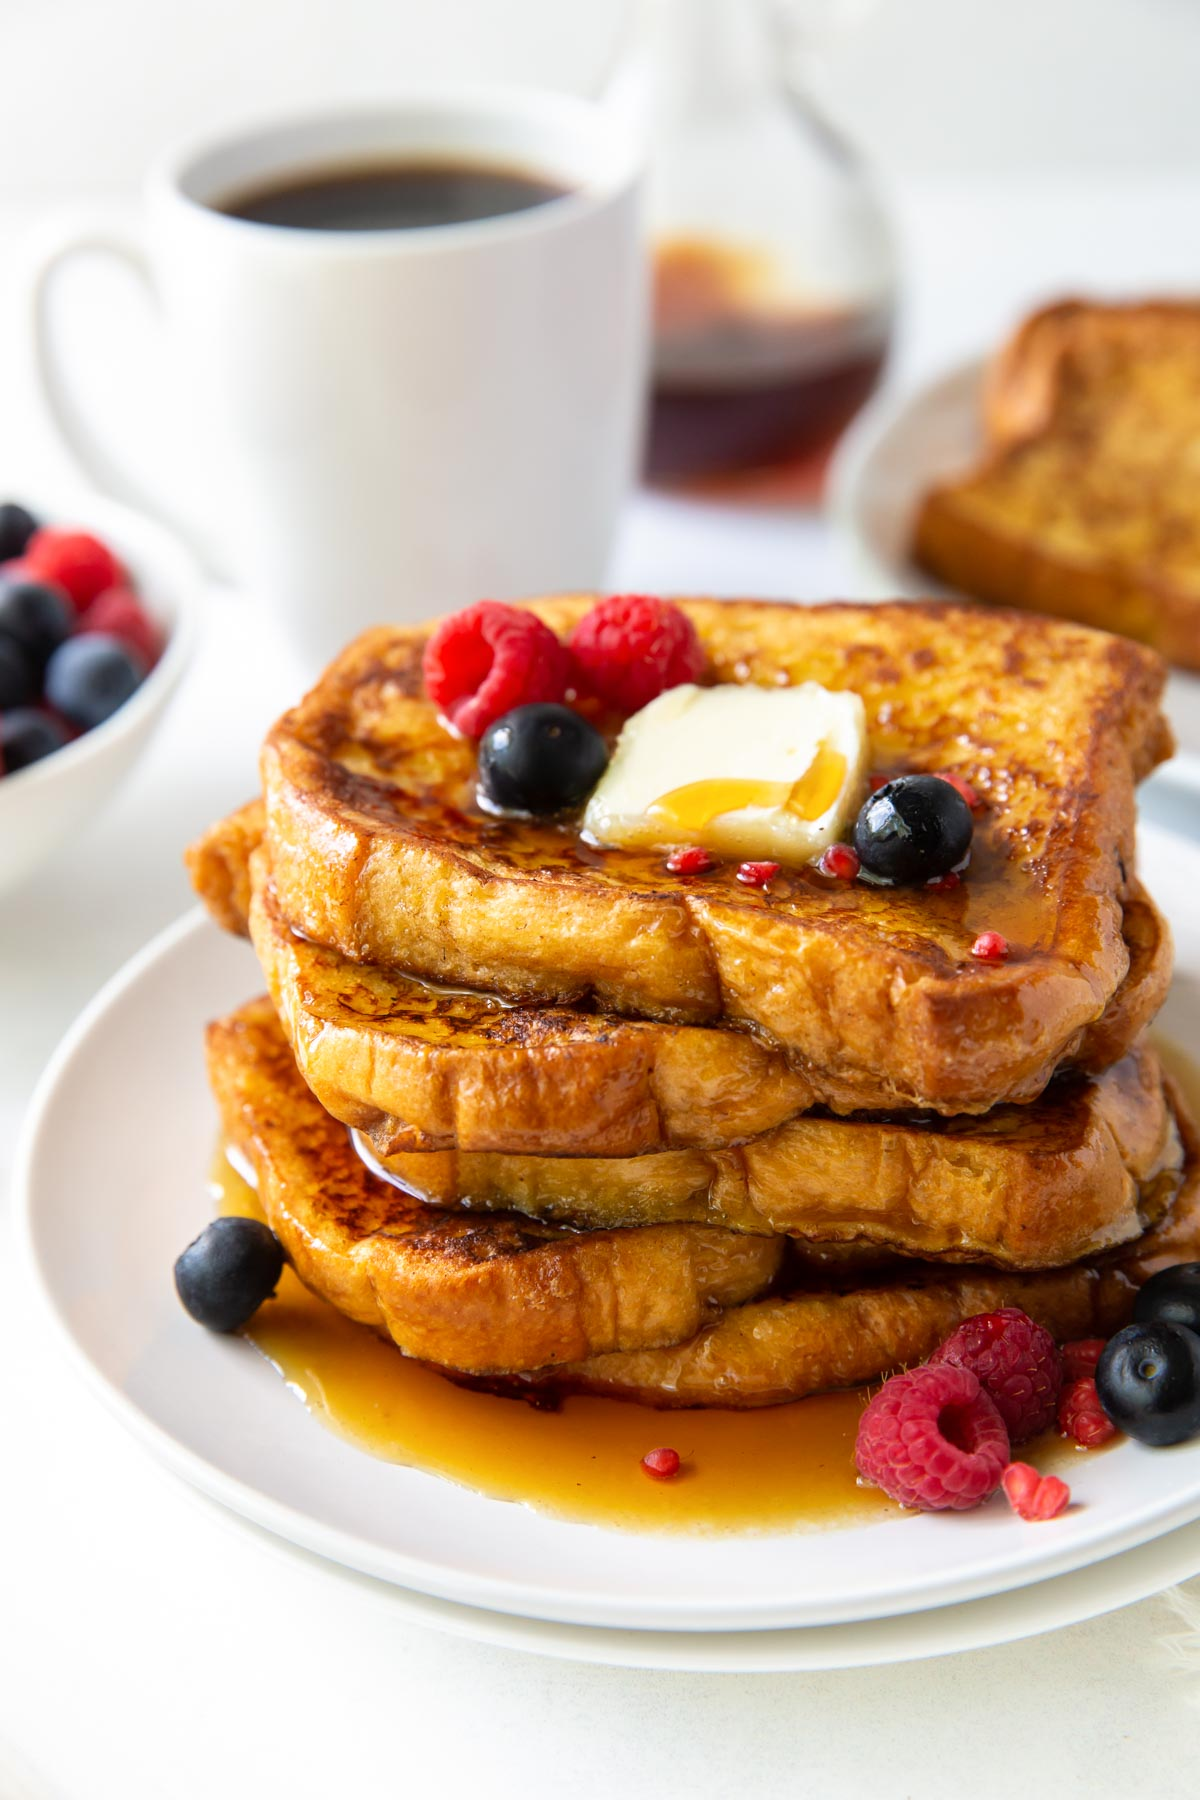 five slices of french toast stacked on a plate and served with butter, berries and maple syrup